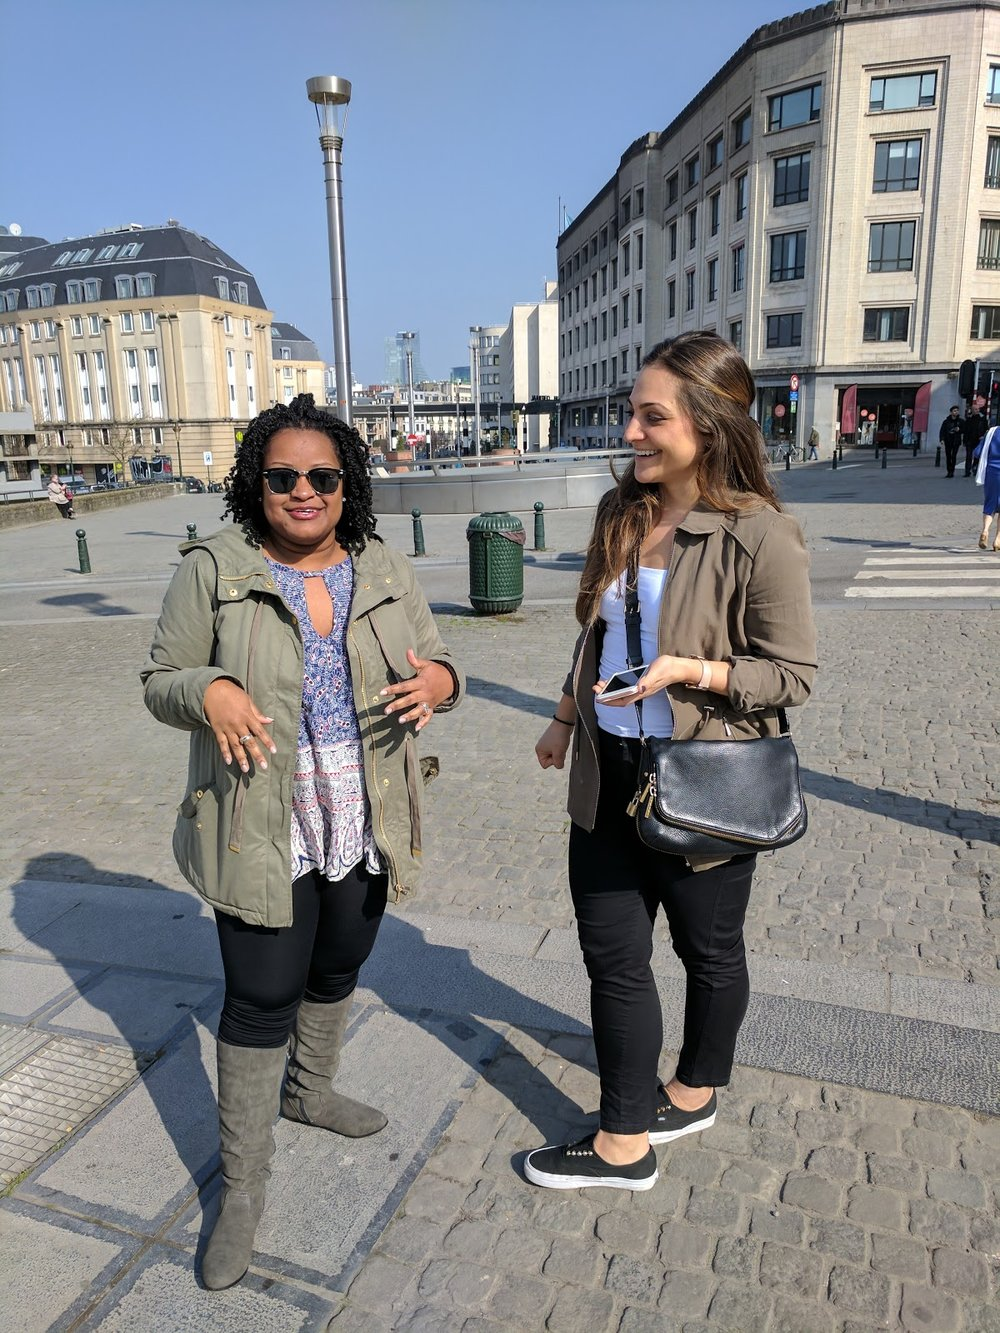 Thanks Jackie for being our navigator in Brussels!